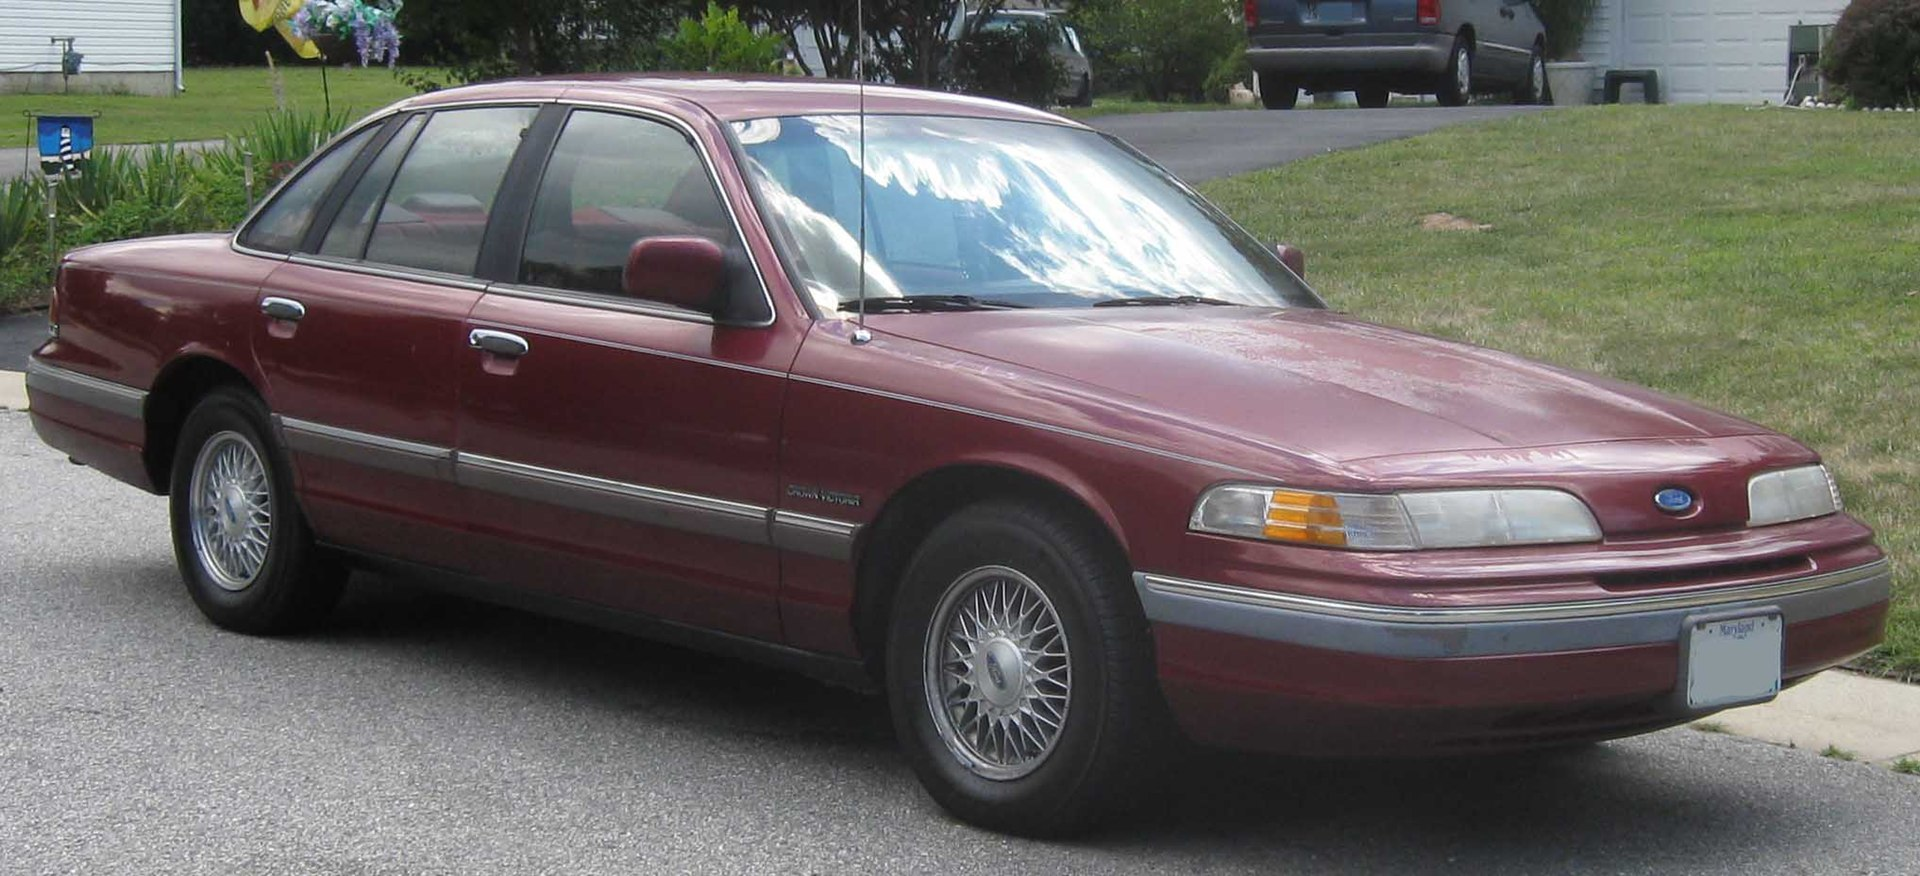 1920px-1992_Ford_Crown_Victoria_LX.jpg